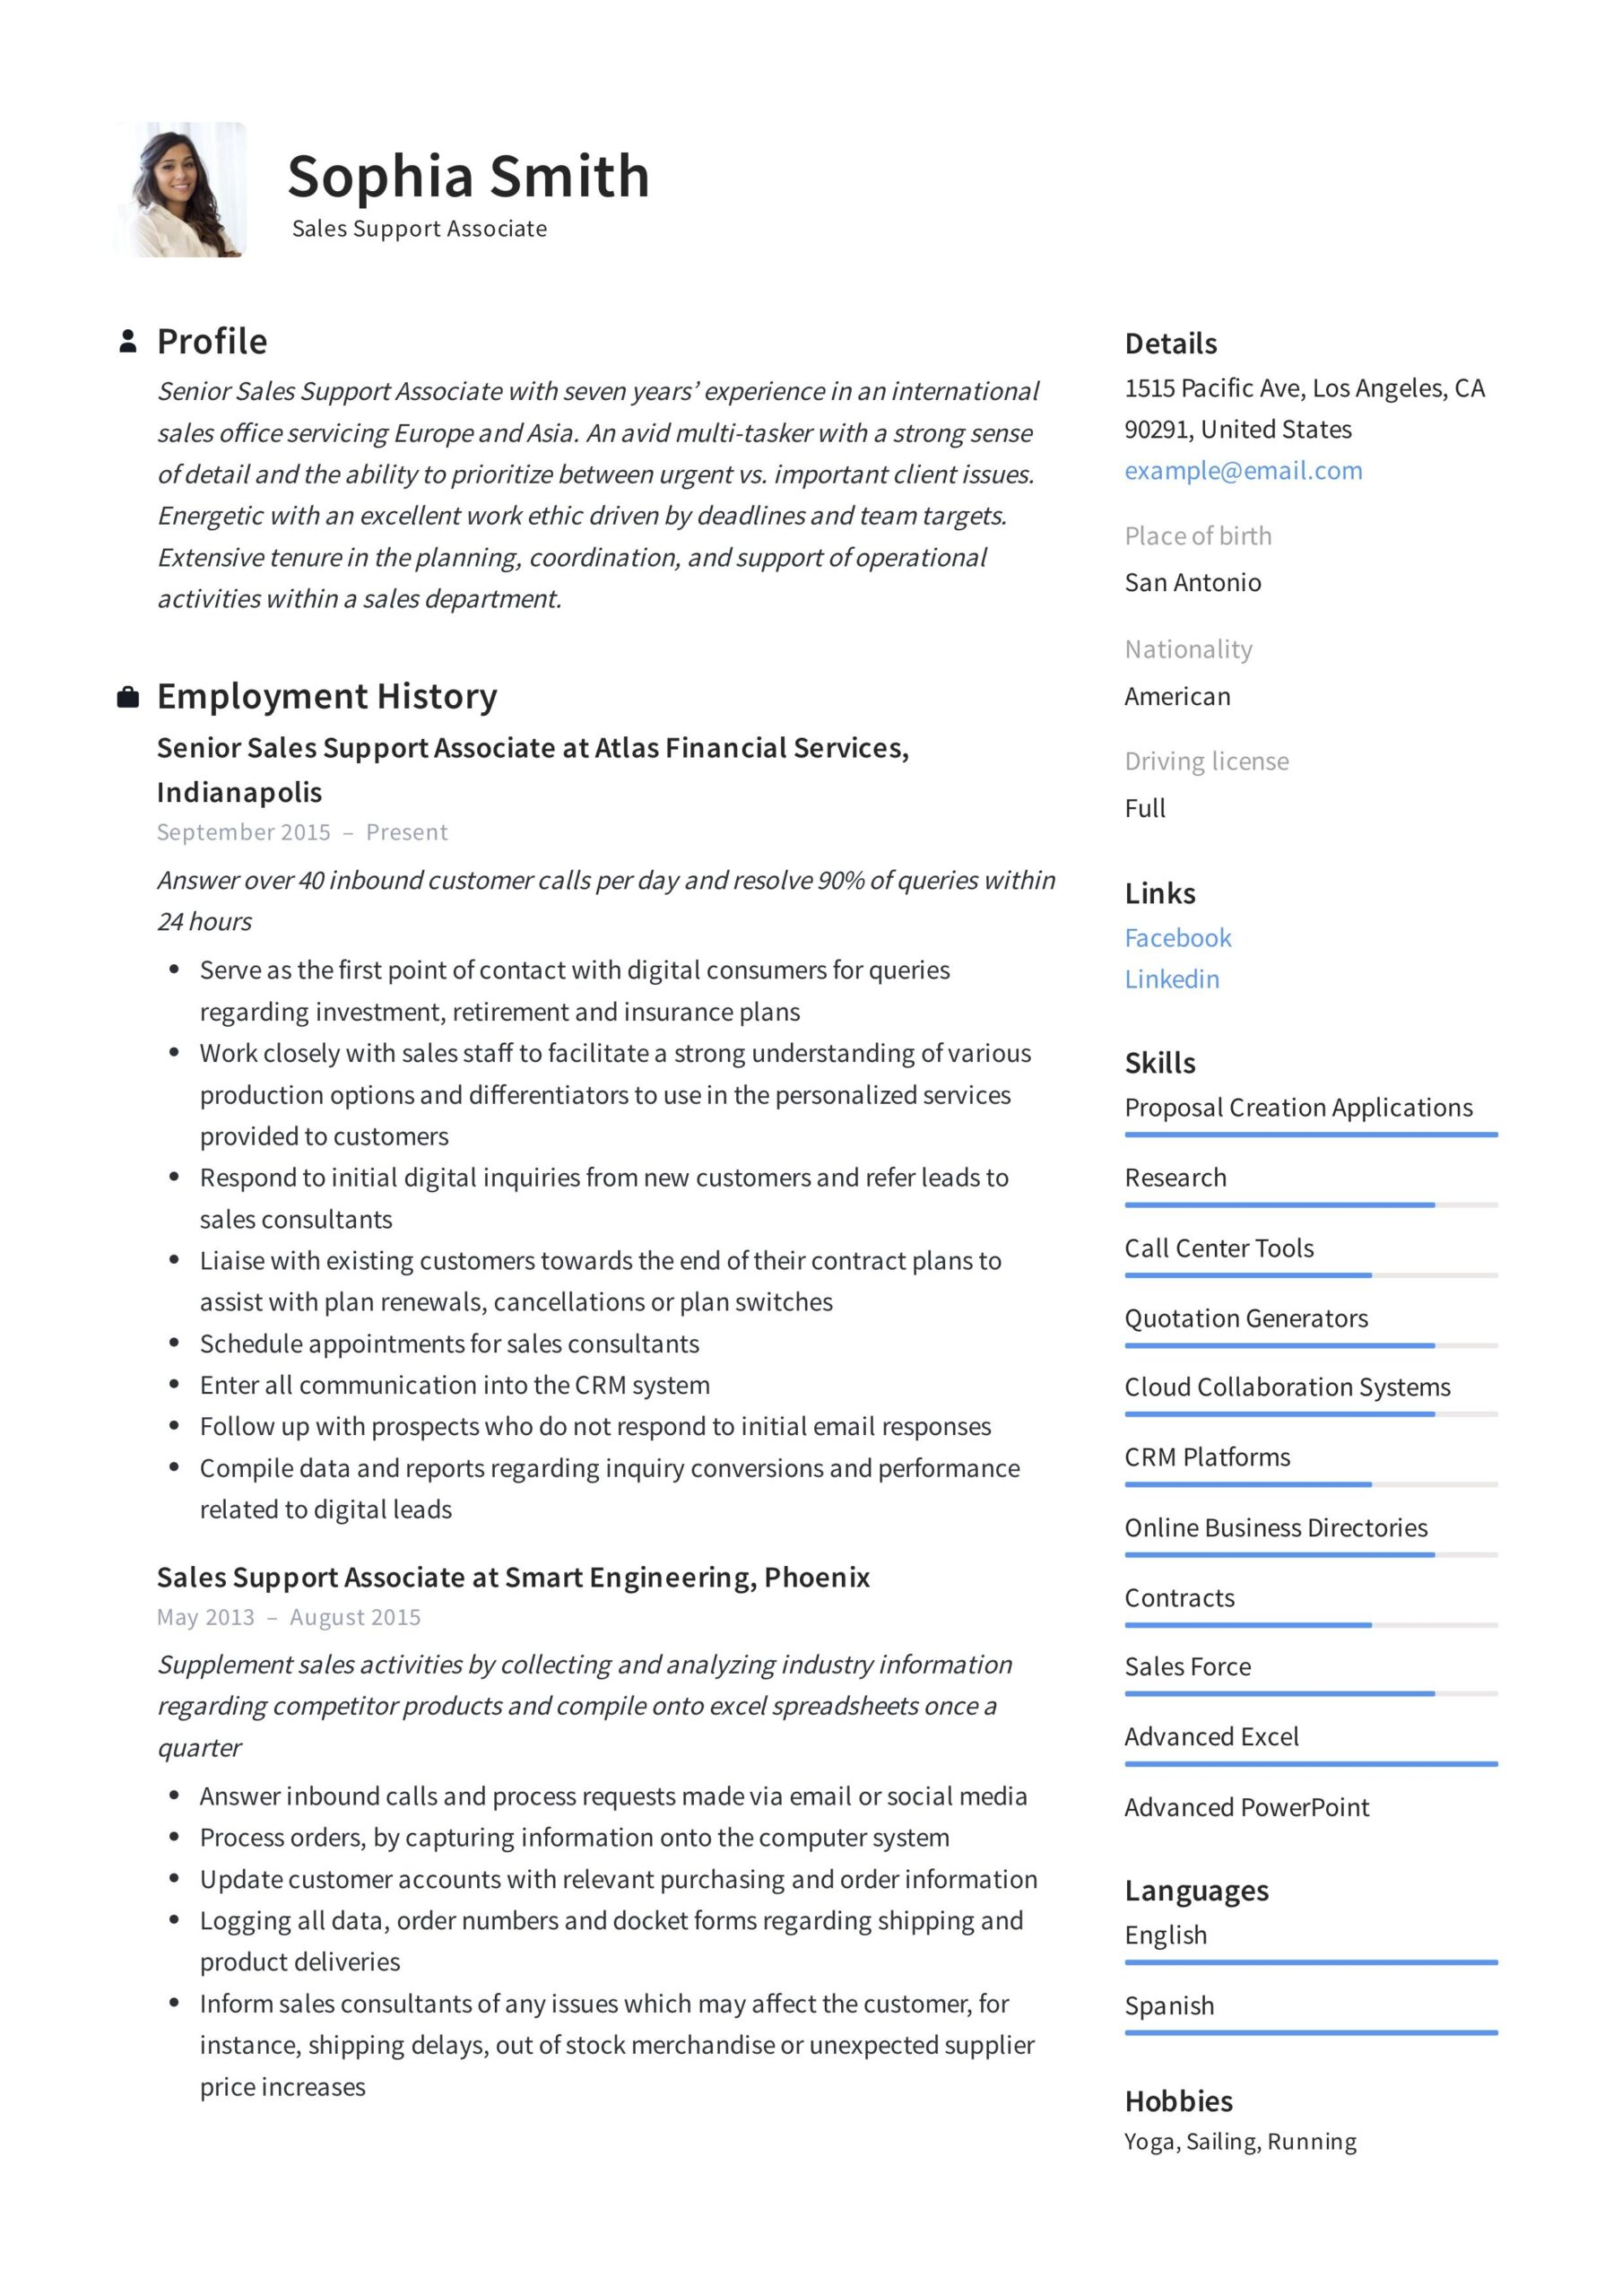 support associate resume template in guide examples writing business development react Resume Business Development Associate Resume